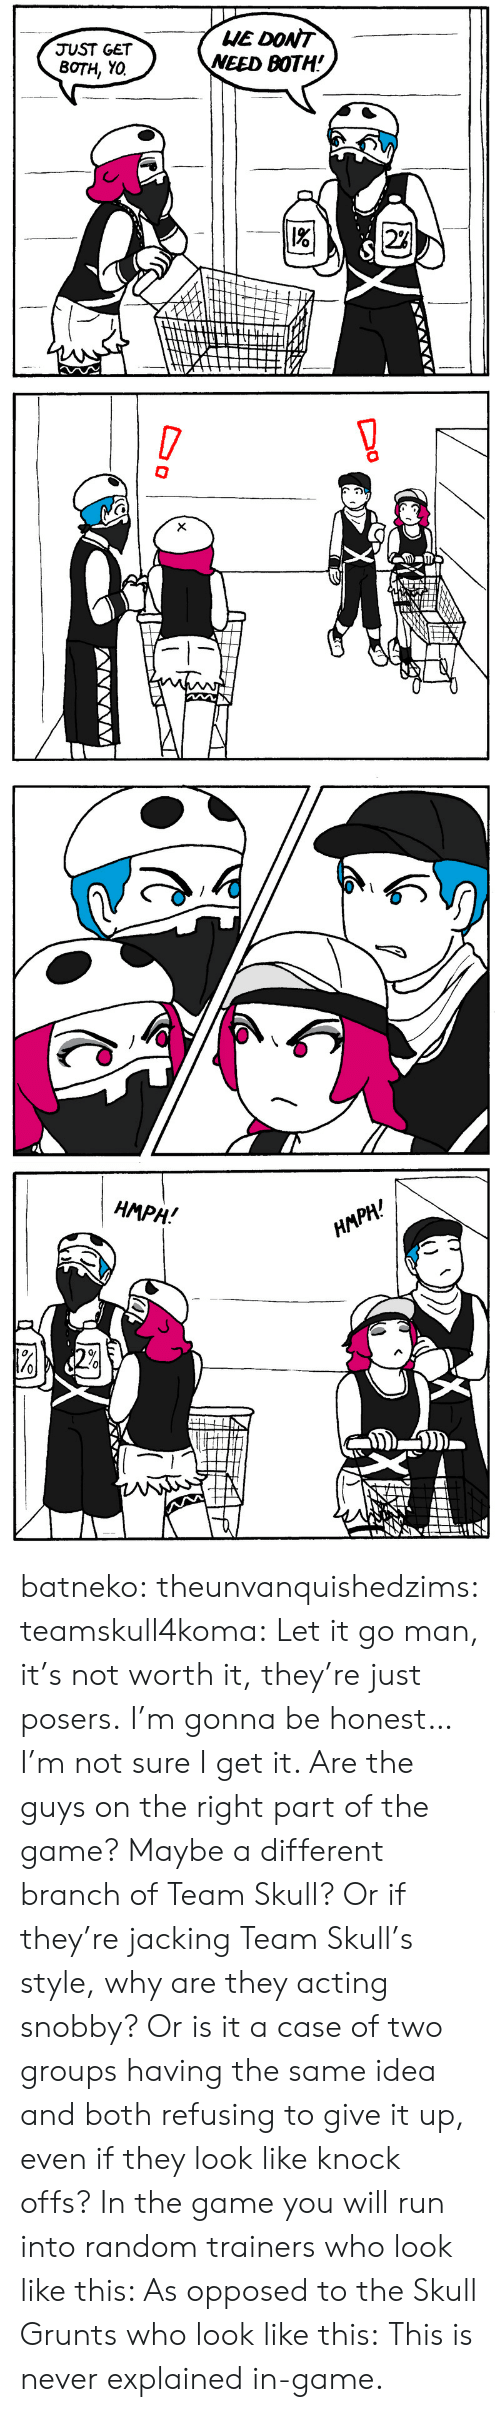 Team Skull: HE DONT  NEED BOTH!  JUST GET  BOTH, YO  2%   !  X  D   НМPH!  HАРH! batneko:  theunvanquishedzims:  teamskull4koma: Let it go man, it's not worth it, they're just posers. I'm gonna be honest… I'm not sure I get it. Are the guys on the right part of the game? Maybe a different branch of Team Skull? Or if they're jacking Team Skull's style, why are they acting snobby? Or is it a case of two groups having the same idea and both refusing to give it up, even if they look like knock offs?  In the game you will run into random trainers who look like this:  As opposed to the Skull Grunts who look like this: This is never explained in-game.